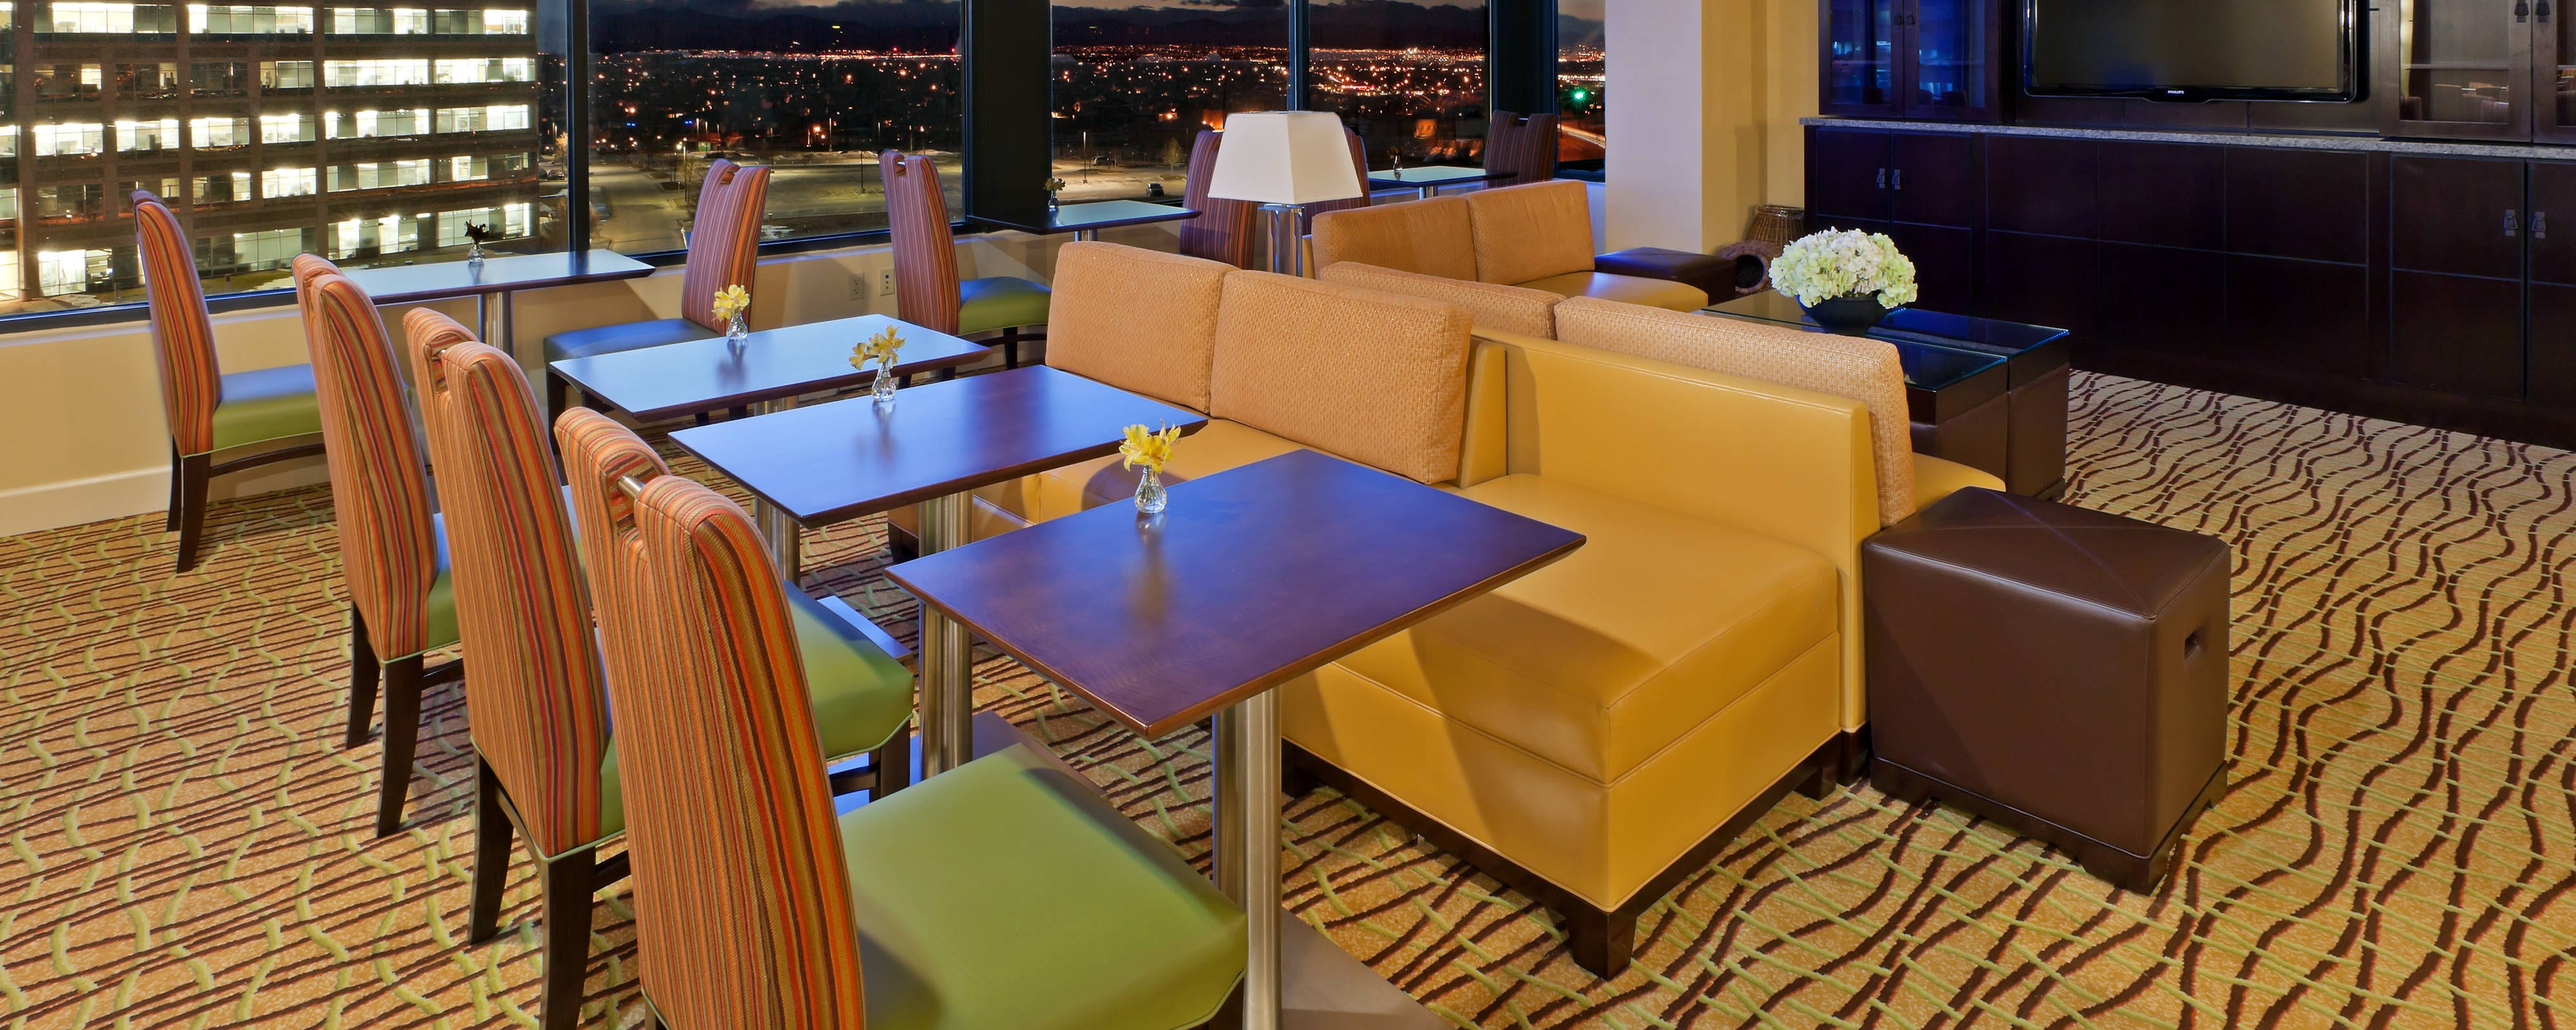 Concierge-Lounge im Marriott Denver South